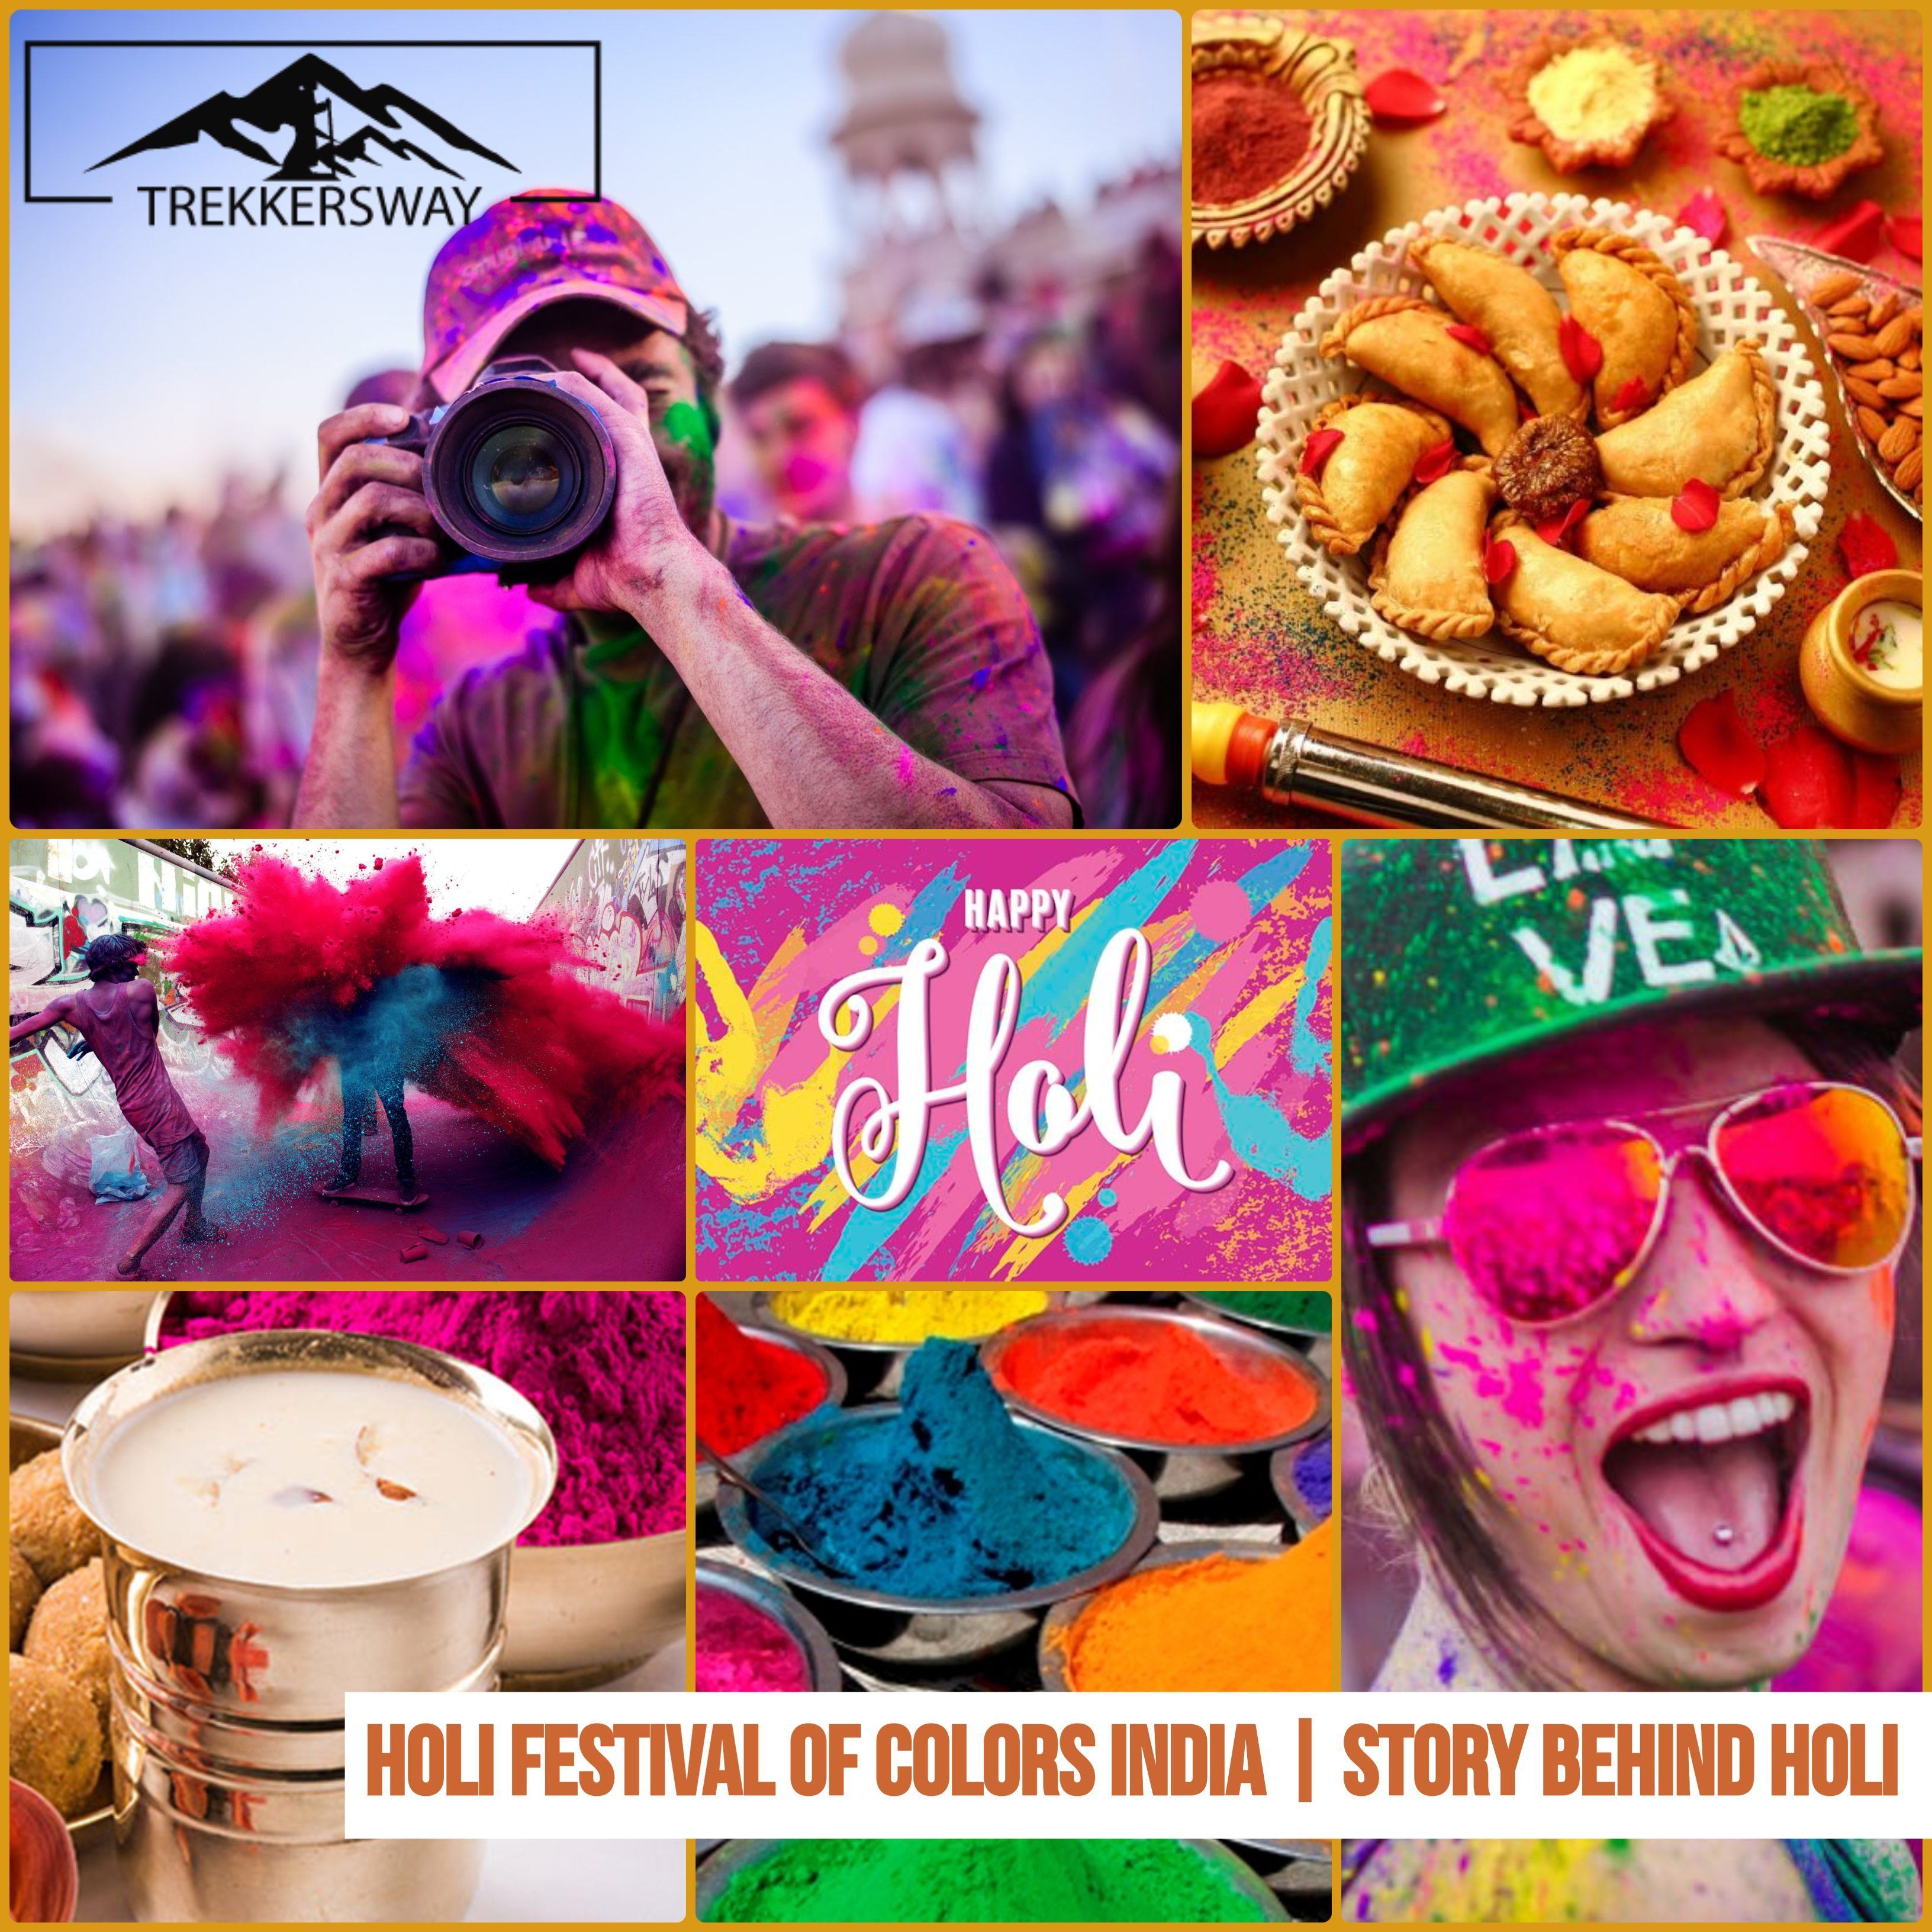 HOLI FESTIVAL OF COLORS INDIA | STORY BEHIND HOLI